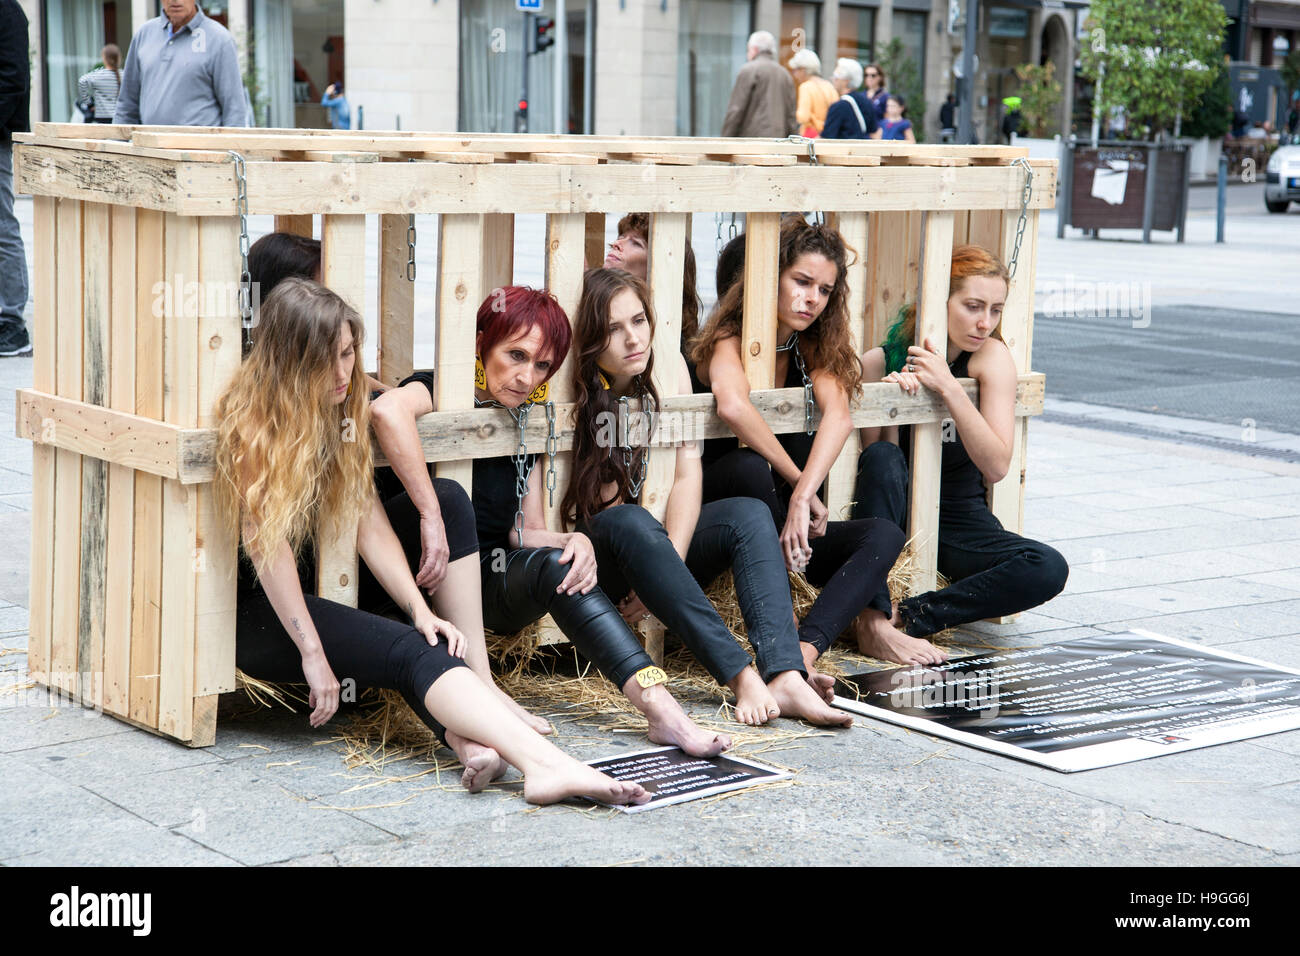 17th September 2016 - Lyon, France - Women locked in a wooden cage protesting against animal cruelty - Stock Image